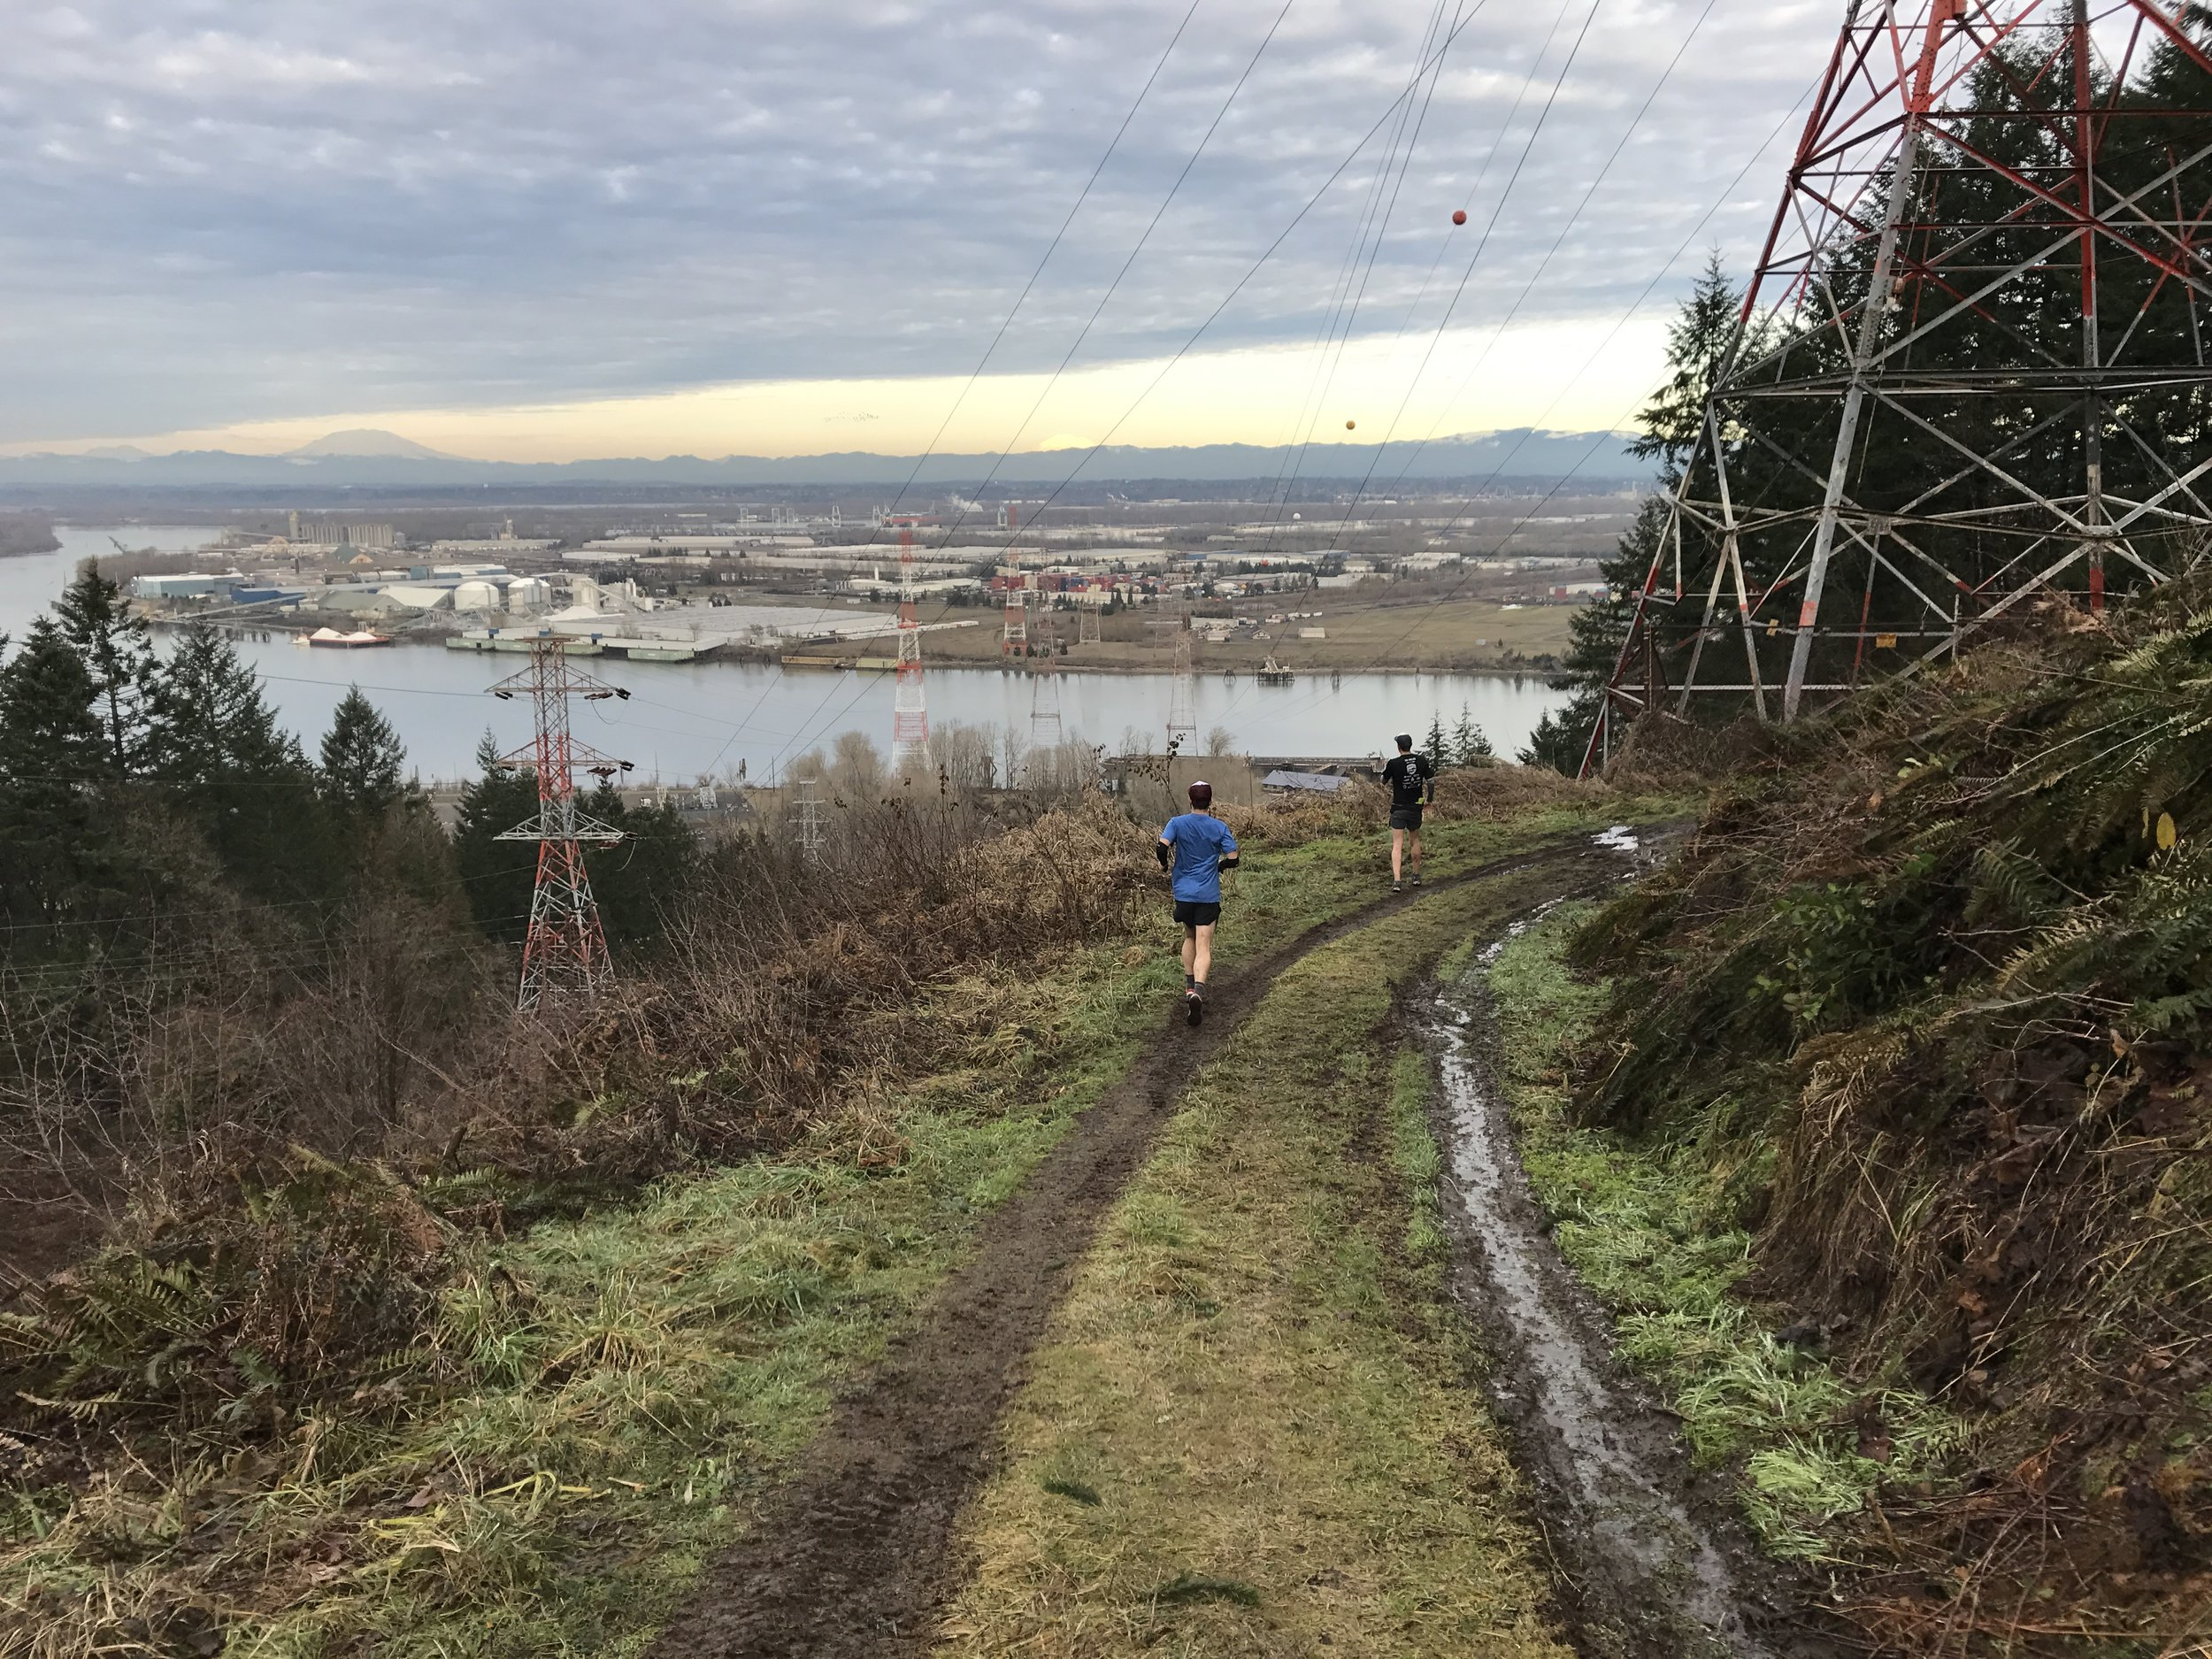 Jordan and Brian take in the views of Mt. St. Helens and Mt. Adams from a muddy BPA Road - North Portland